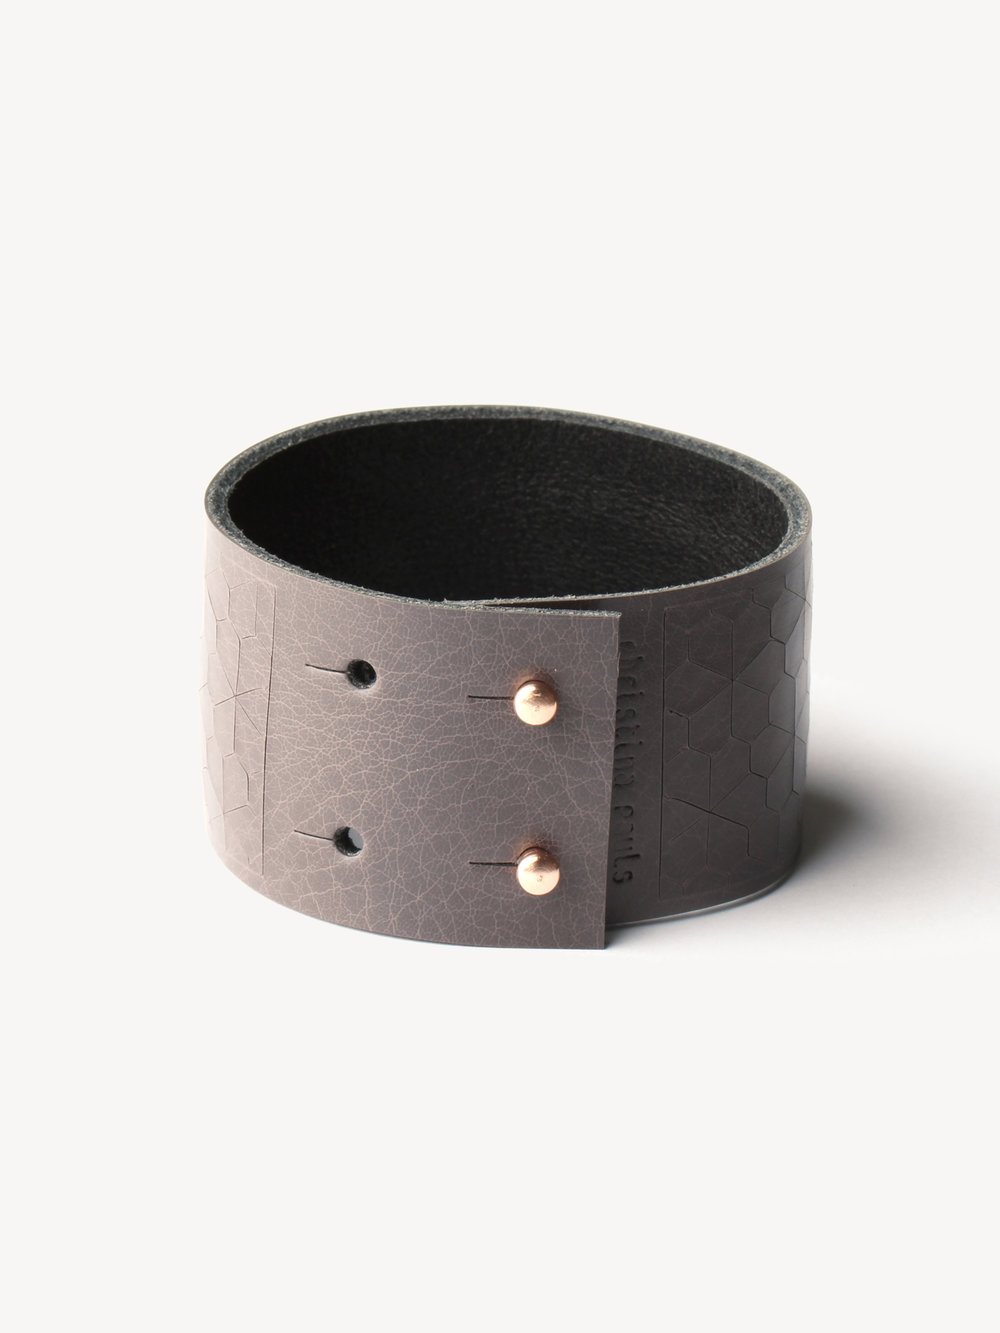 Leder-Armband, schmal in grau/ Leather bracelet, small in grey